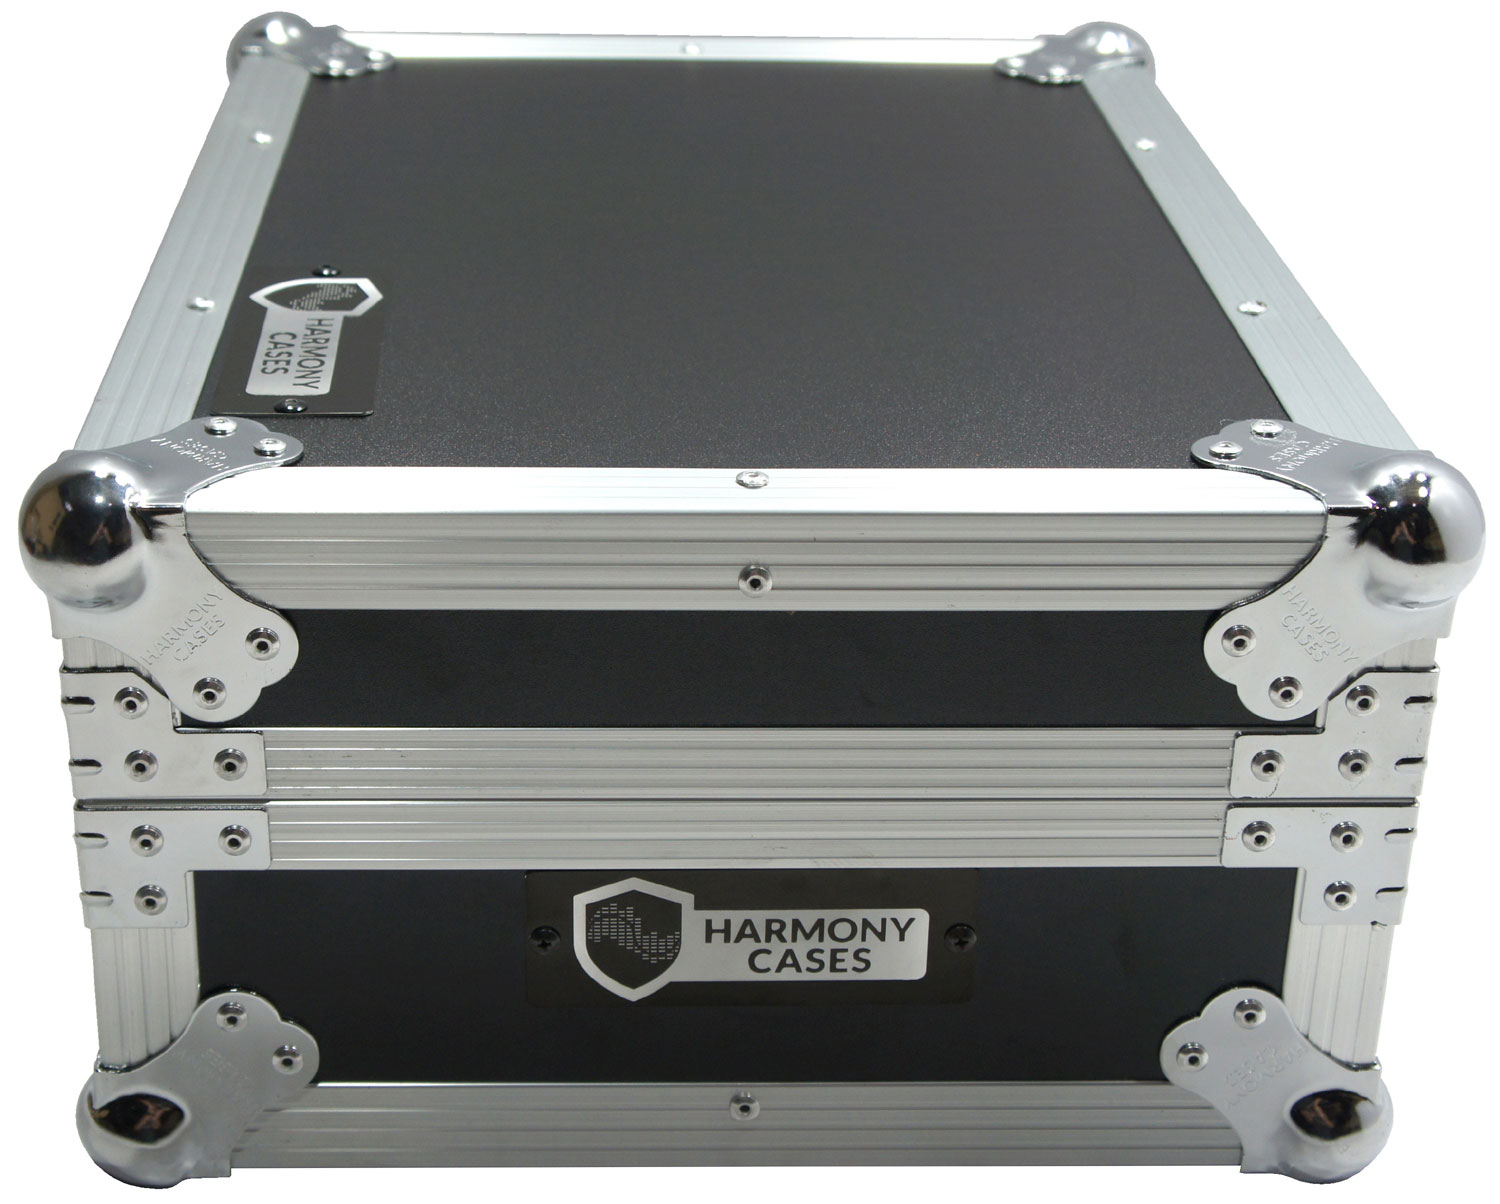 Harmony Cases HCCDJ New Flight DJ Road Custom Case fits Pioneer CDJ800 CD Player